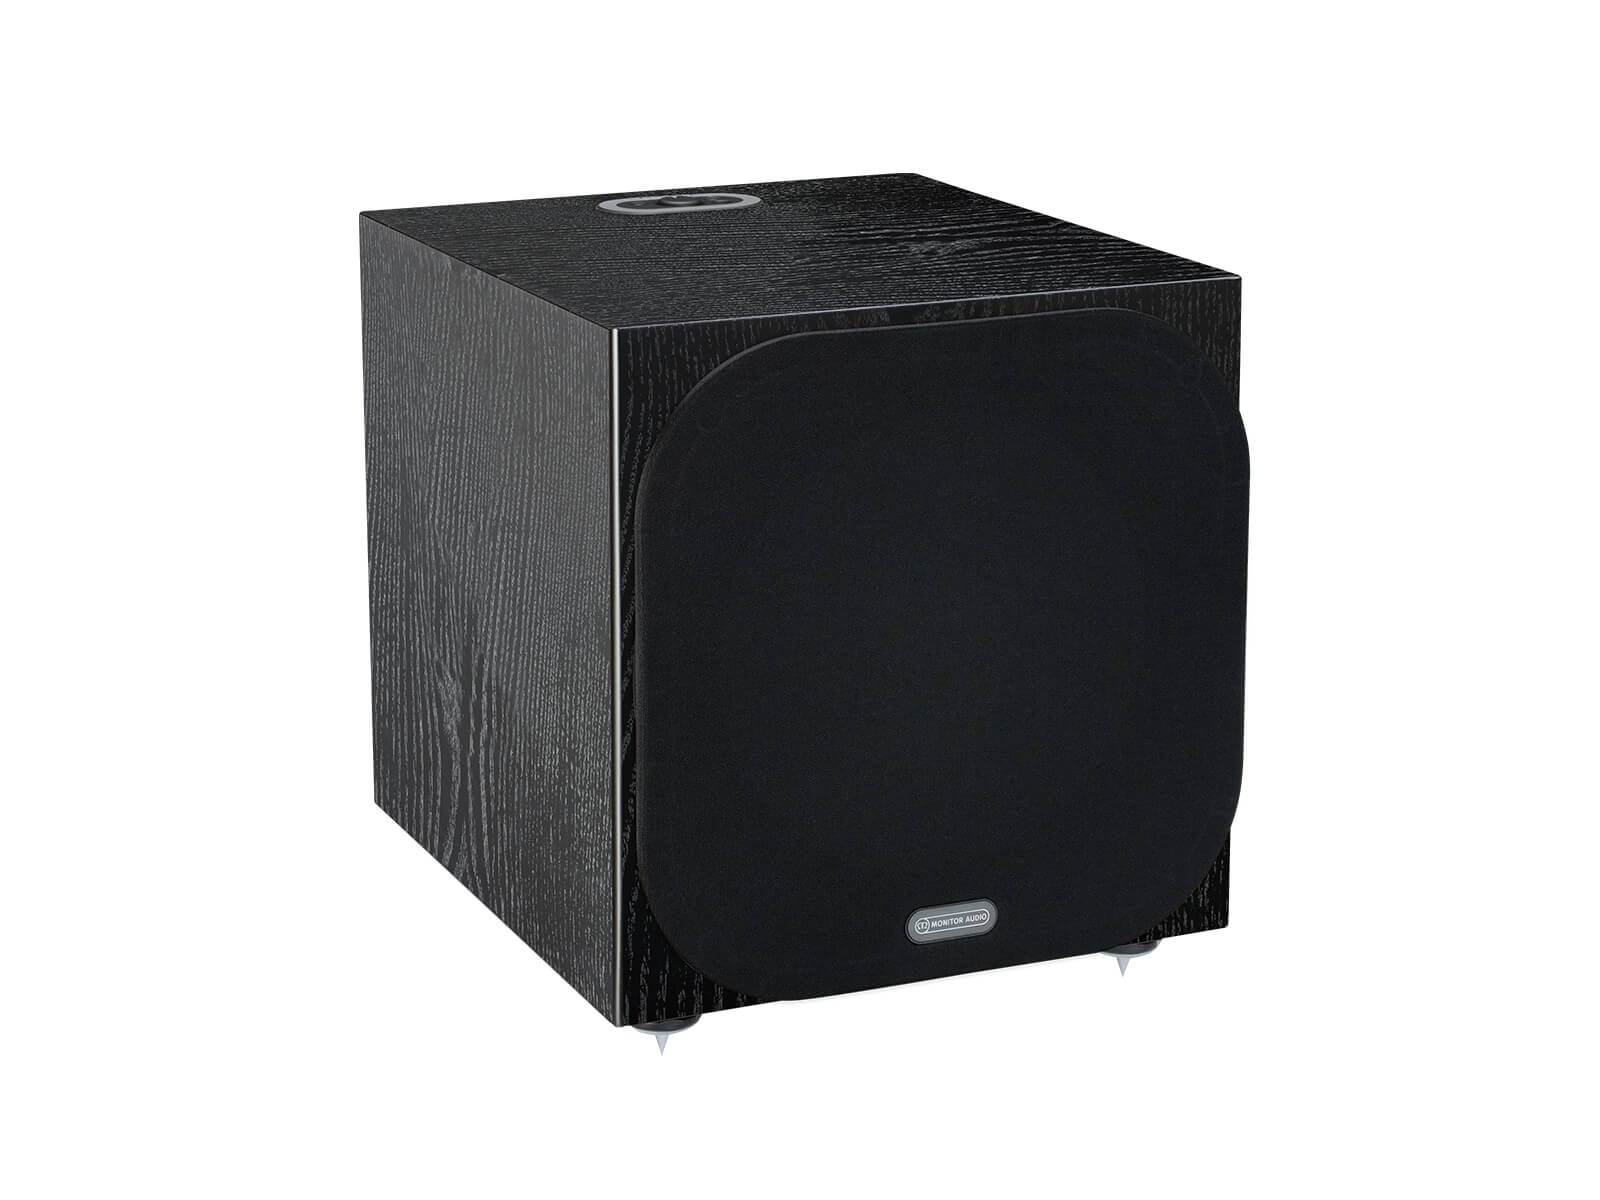 Silver W-12 subwoofer, featuring a grille and a black oak finish.